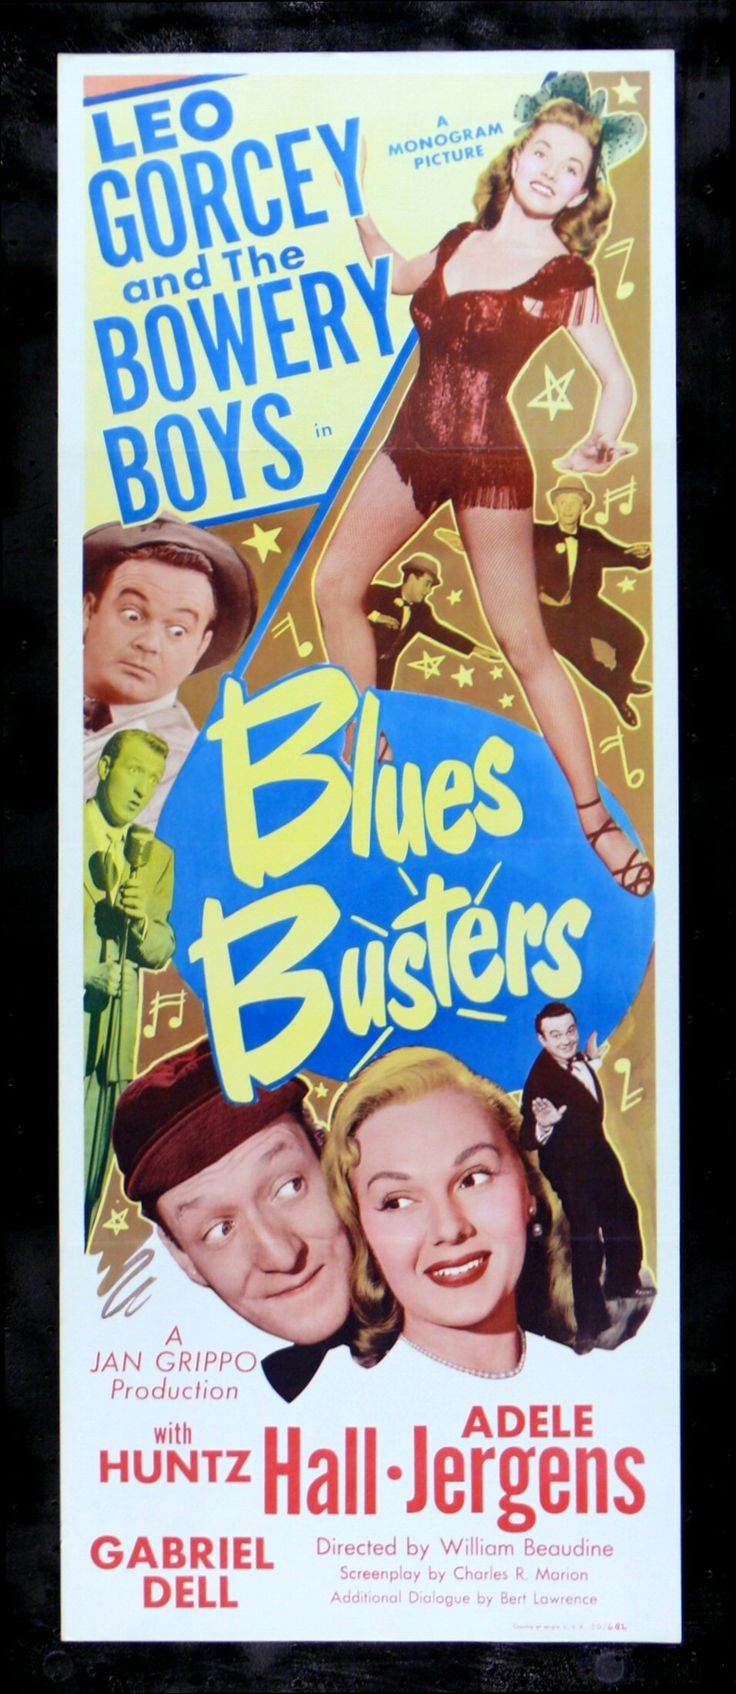 BLUES BUSTERS (1950) - - Leo Gorcey & The Bowery Boys - Monogram Pictures…